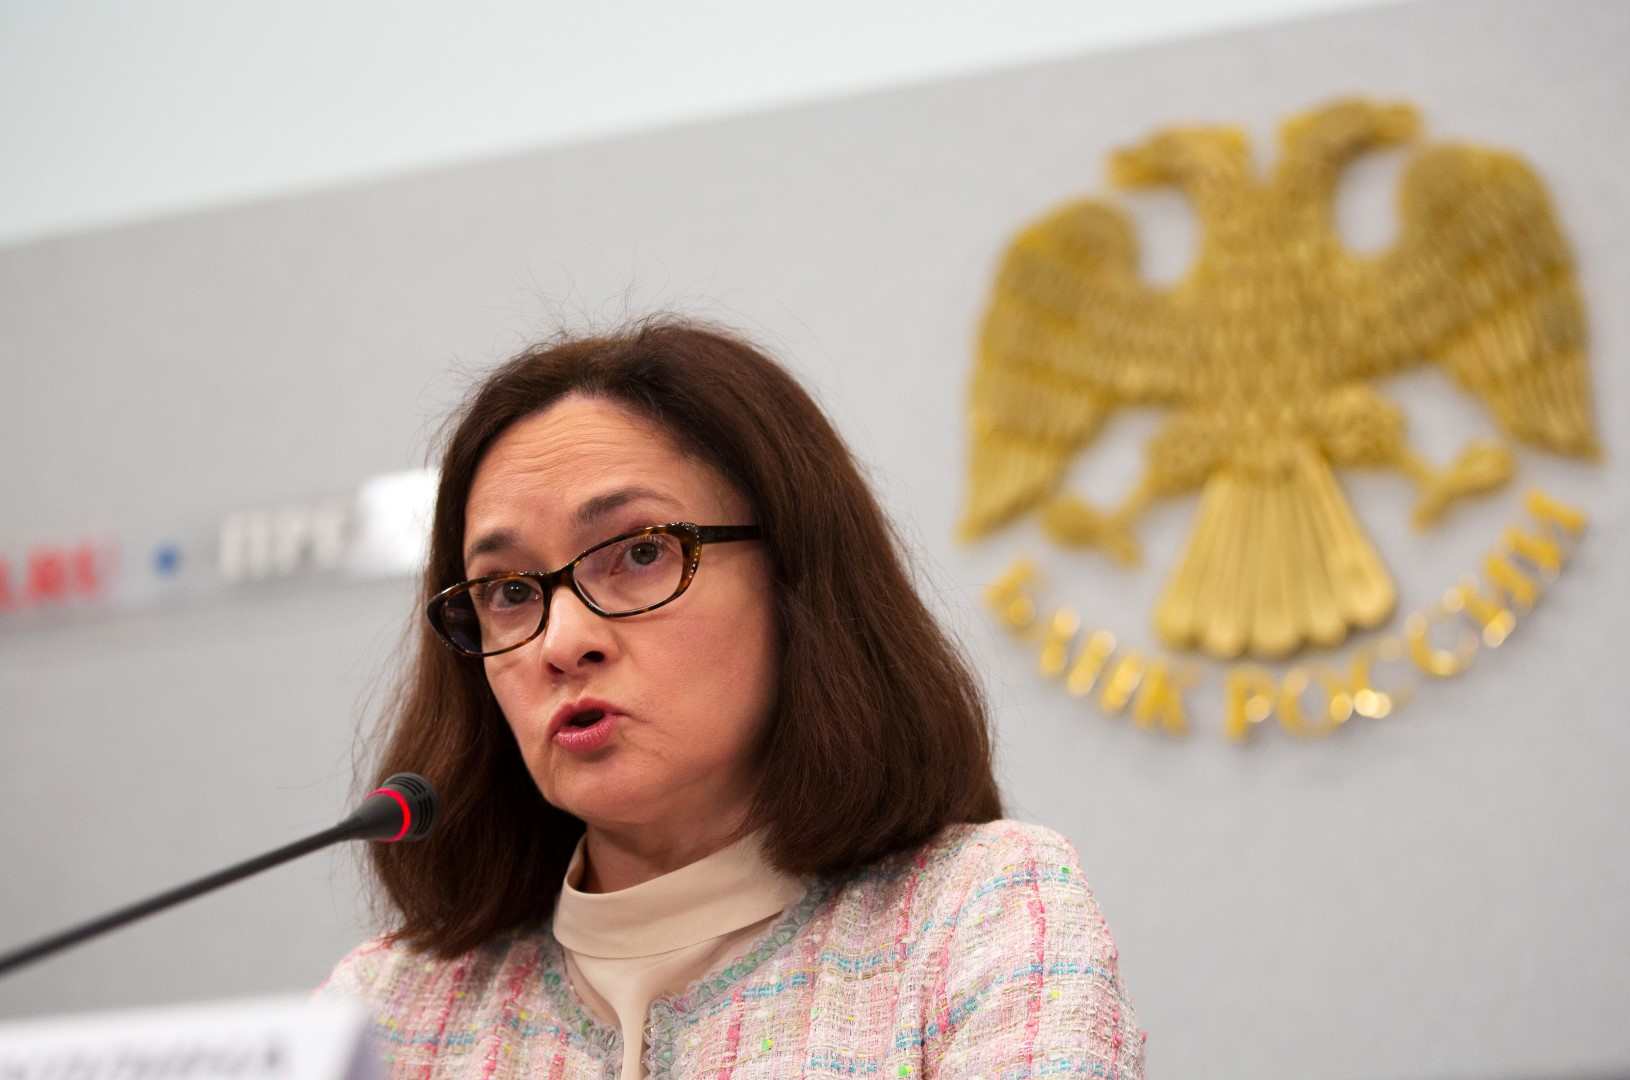 Elvira Nabiullina, governor of Russia's central bank, speaks during a rate decision news conference in Moscow, Russia, on Friday, March 13, 2015. Russia's central bank lowered its main interest rate in line with most economist forecasts, as stabilizing inflation clears the path to boosting an economy buckling under low oil prices and sanctions over Ukraine. Photographer: Andrey Rudakov/Bloomberg *** Local Caption *** Elvira Nabiullina